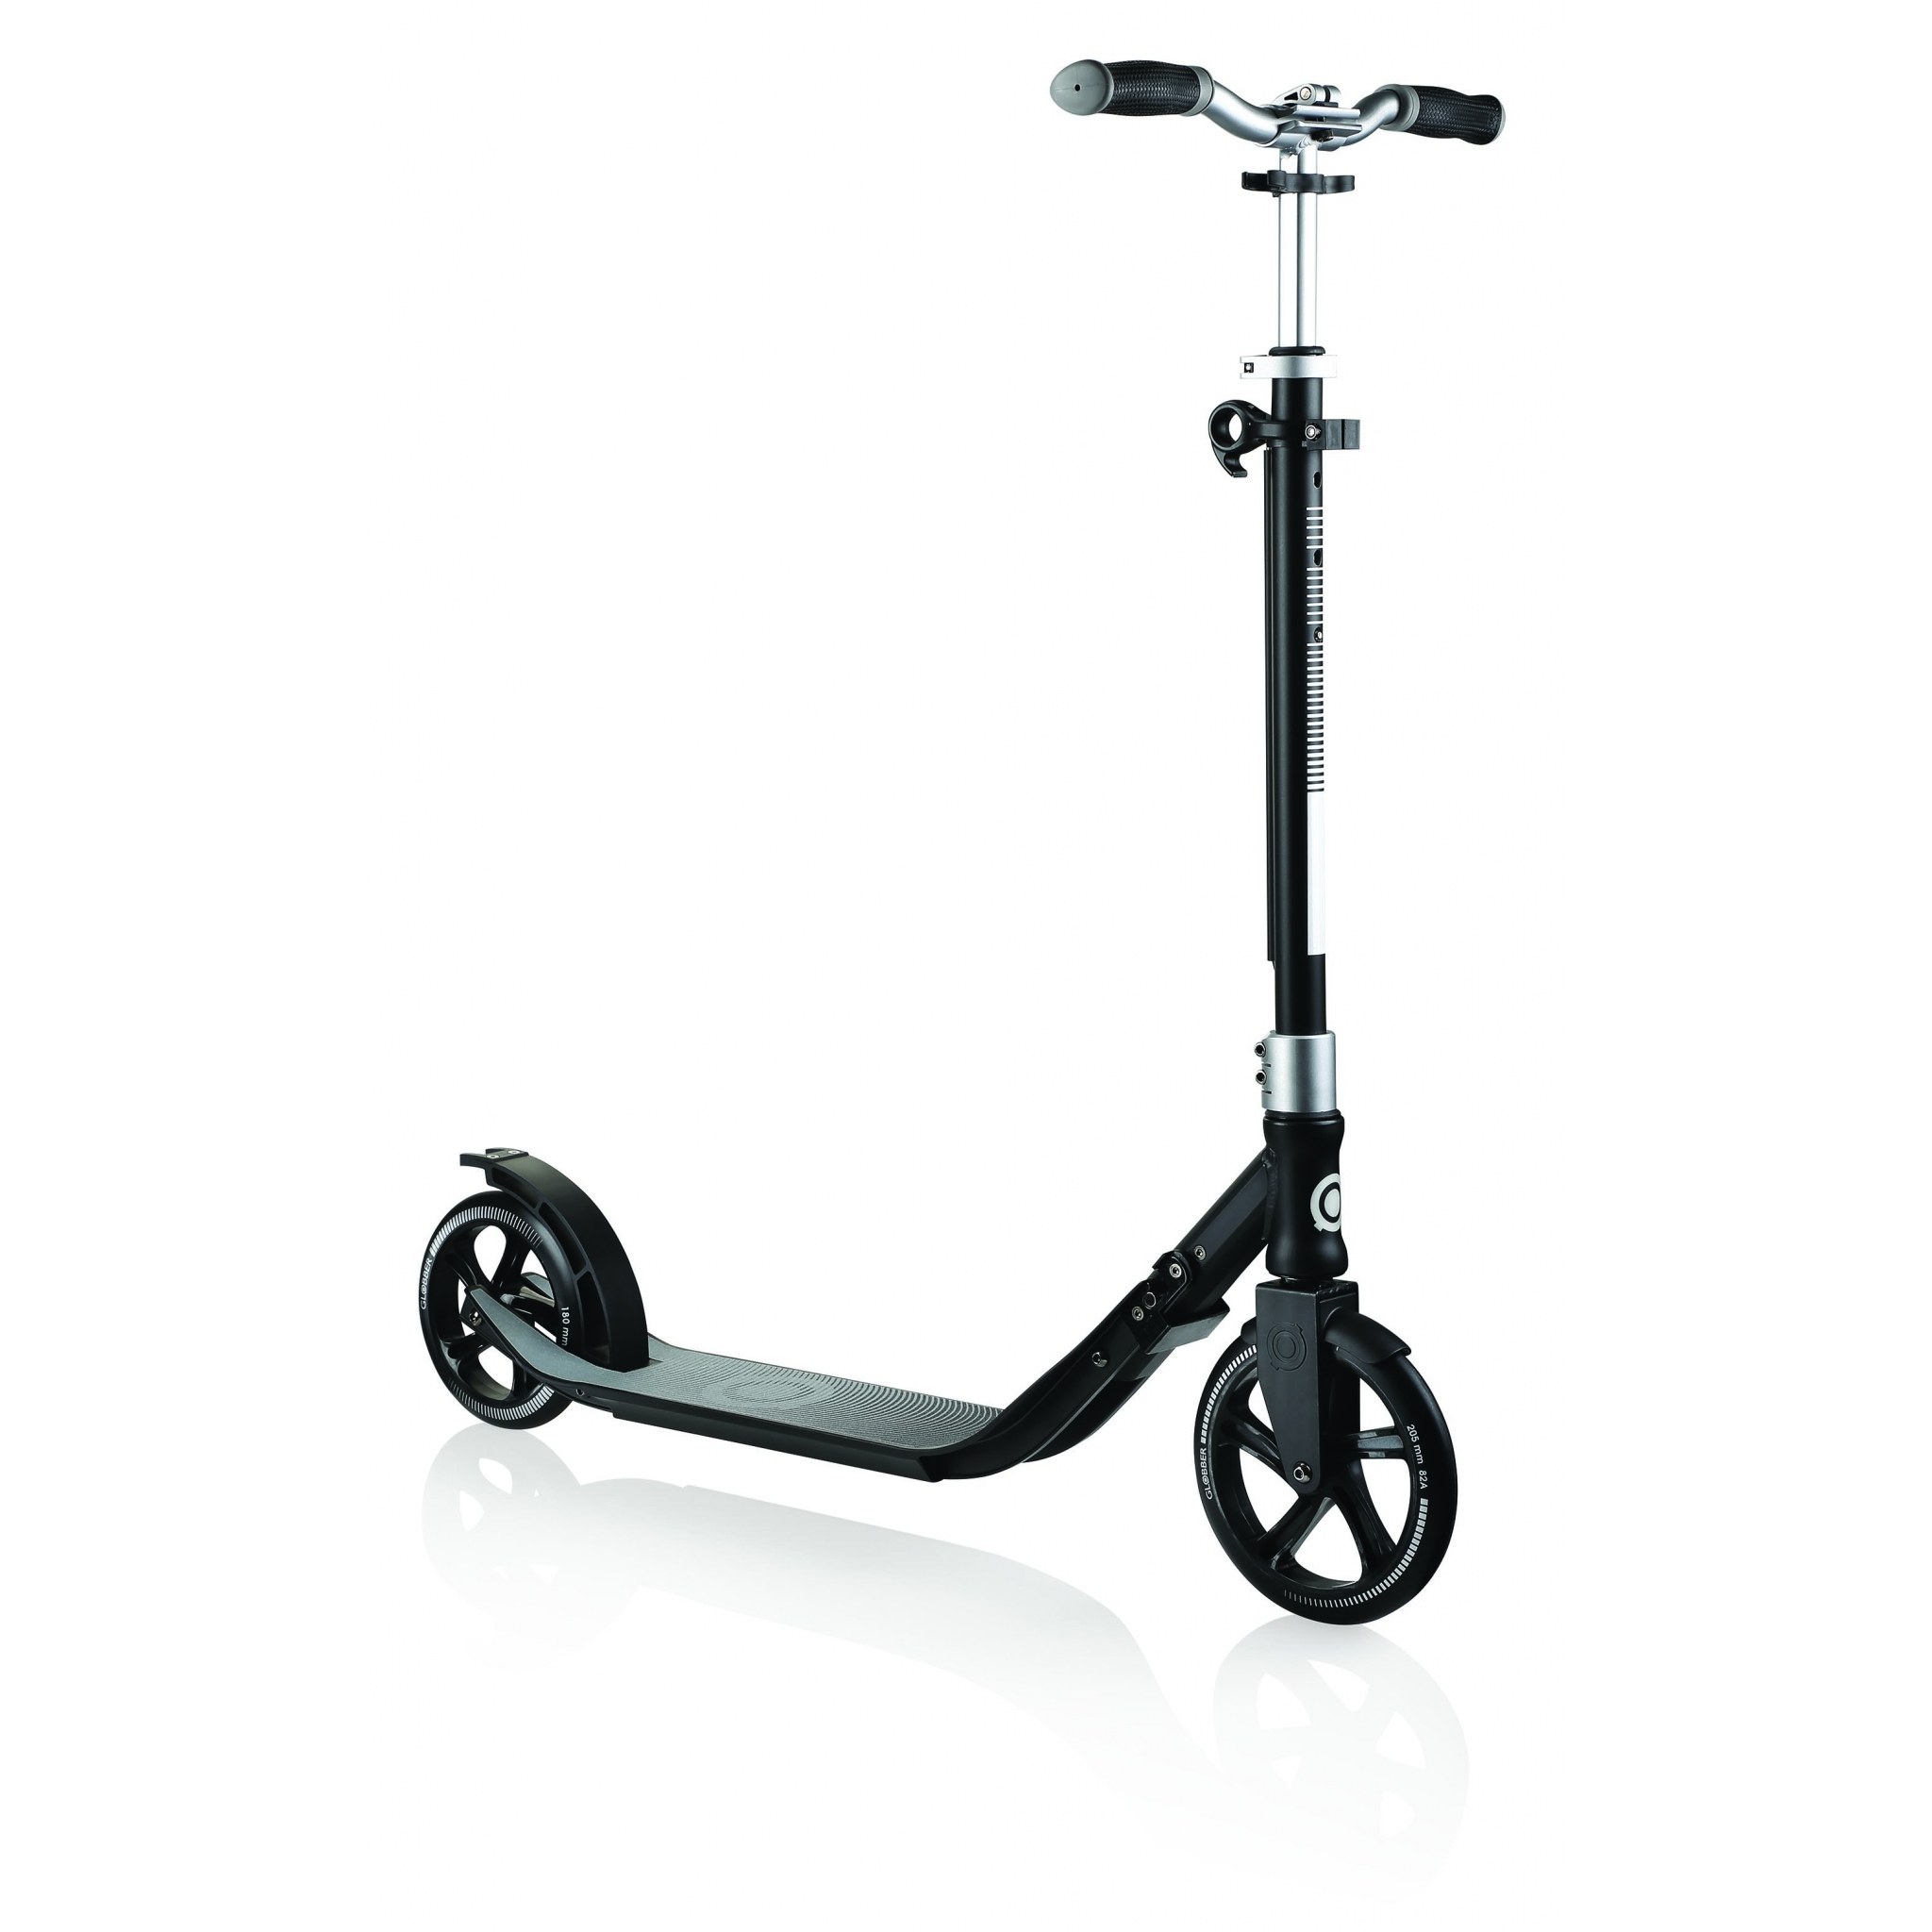 Globber-ONE-NL-205-180-DUO-2-wheel-adjustable-scooter-for-adults-lead-grey